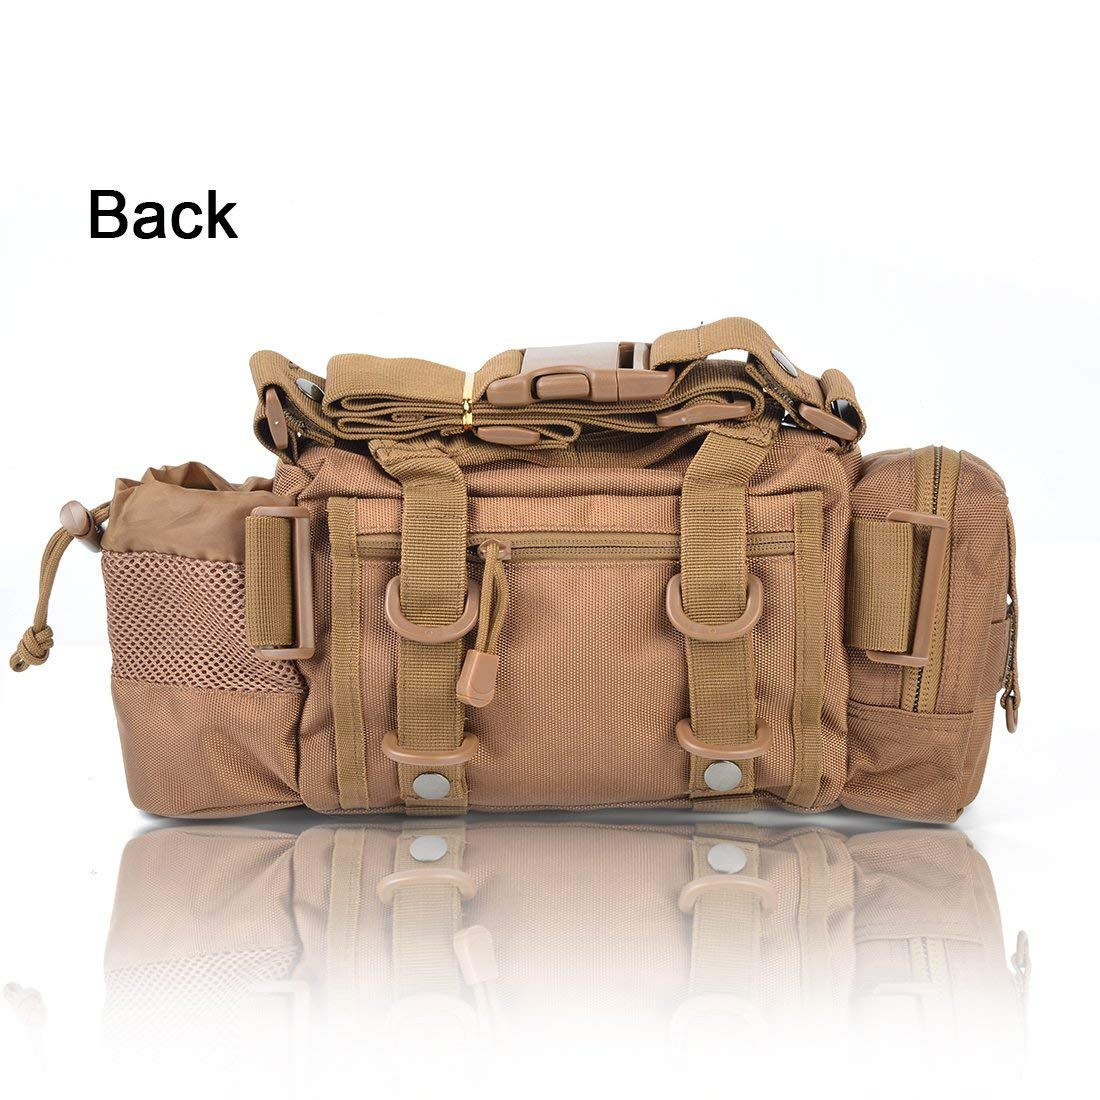 8912275c9090 BLISSWILL Portable Outdoor Fishing Tackle Bags Waist Fishing Bag Fishing  Gear Storage Bag Water-Resistant Multifunctional Bag Fly Fishing Bag  Durable ...